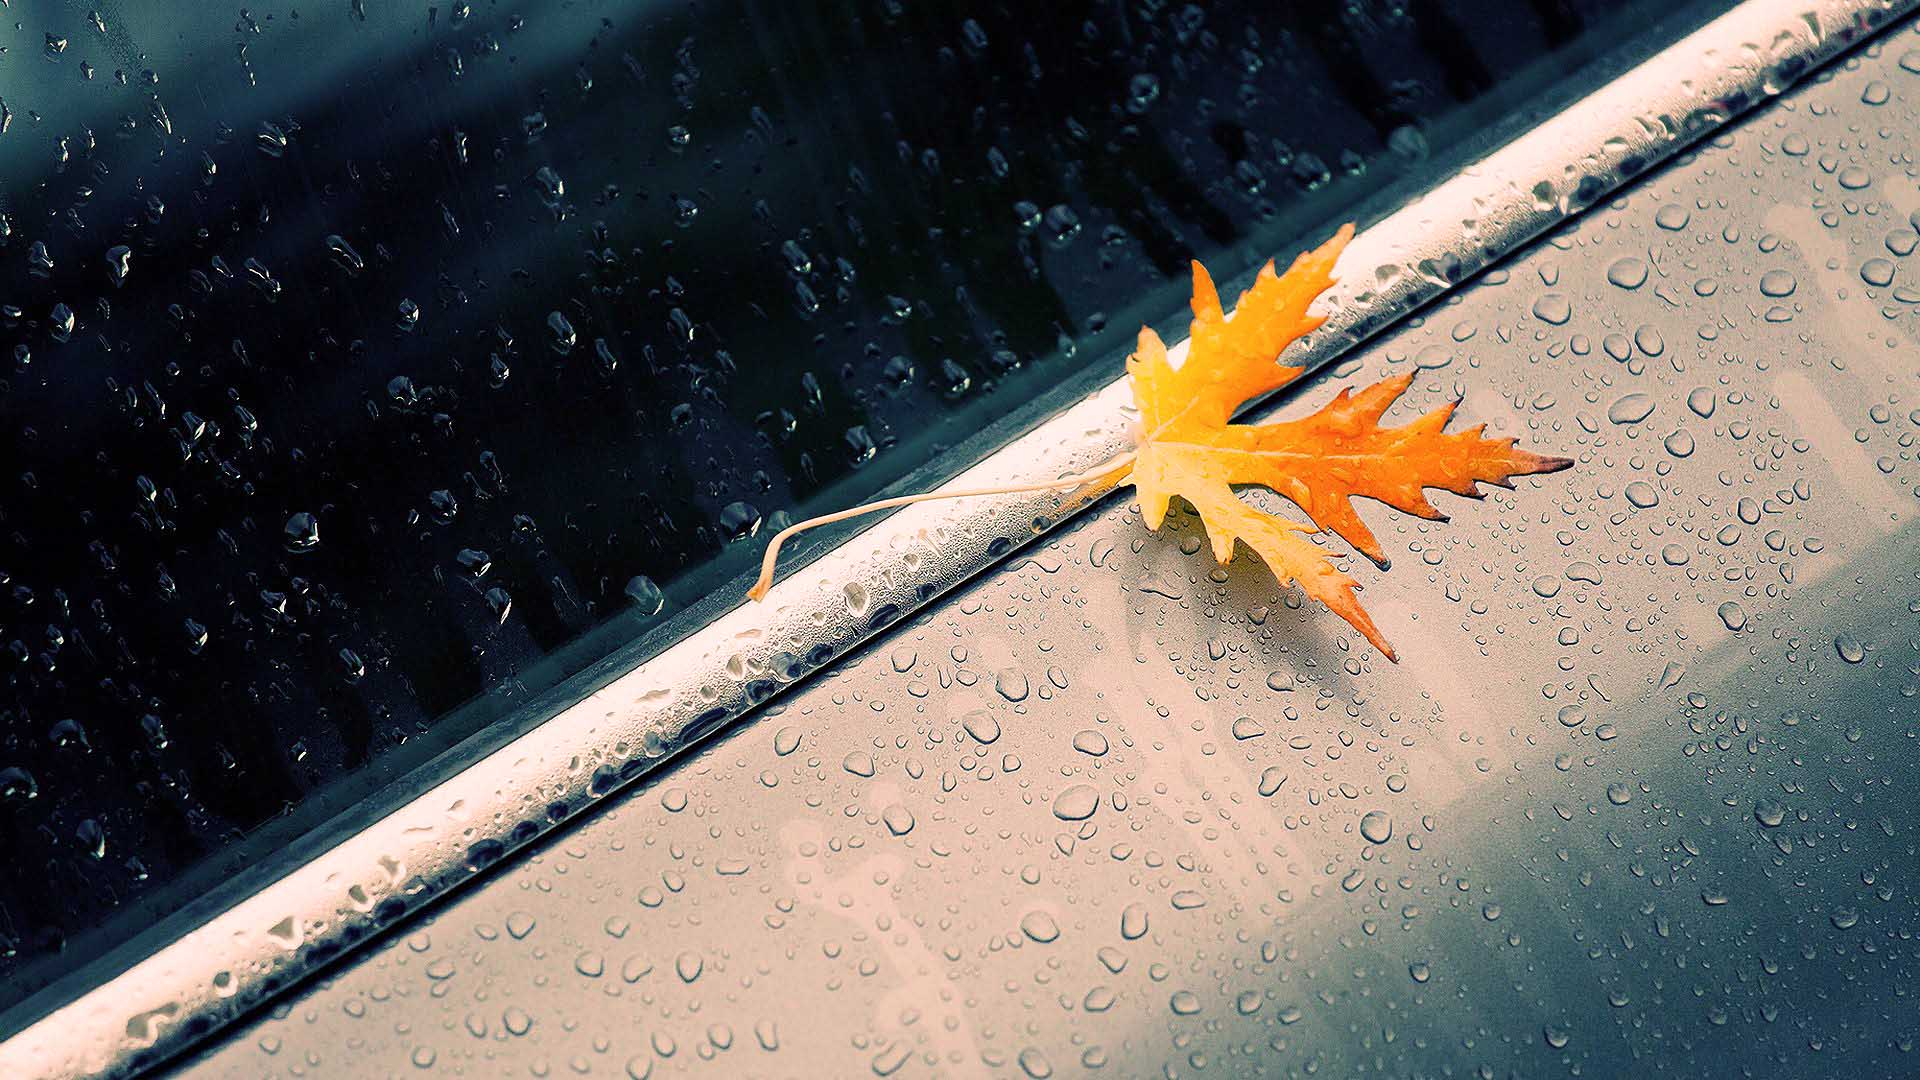 rain photos wallpaper high definition high quality widescreen